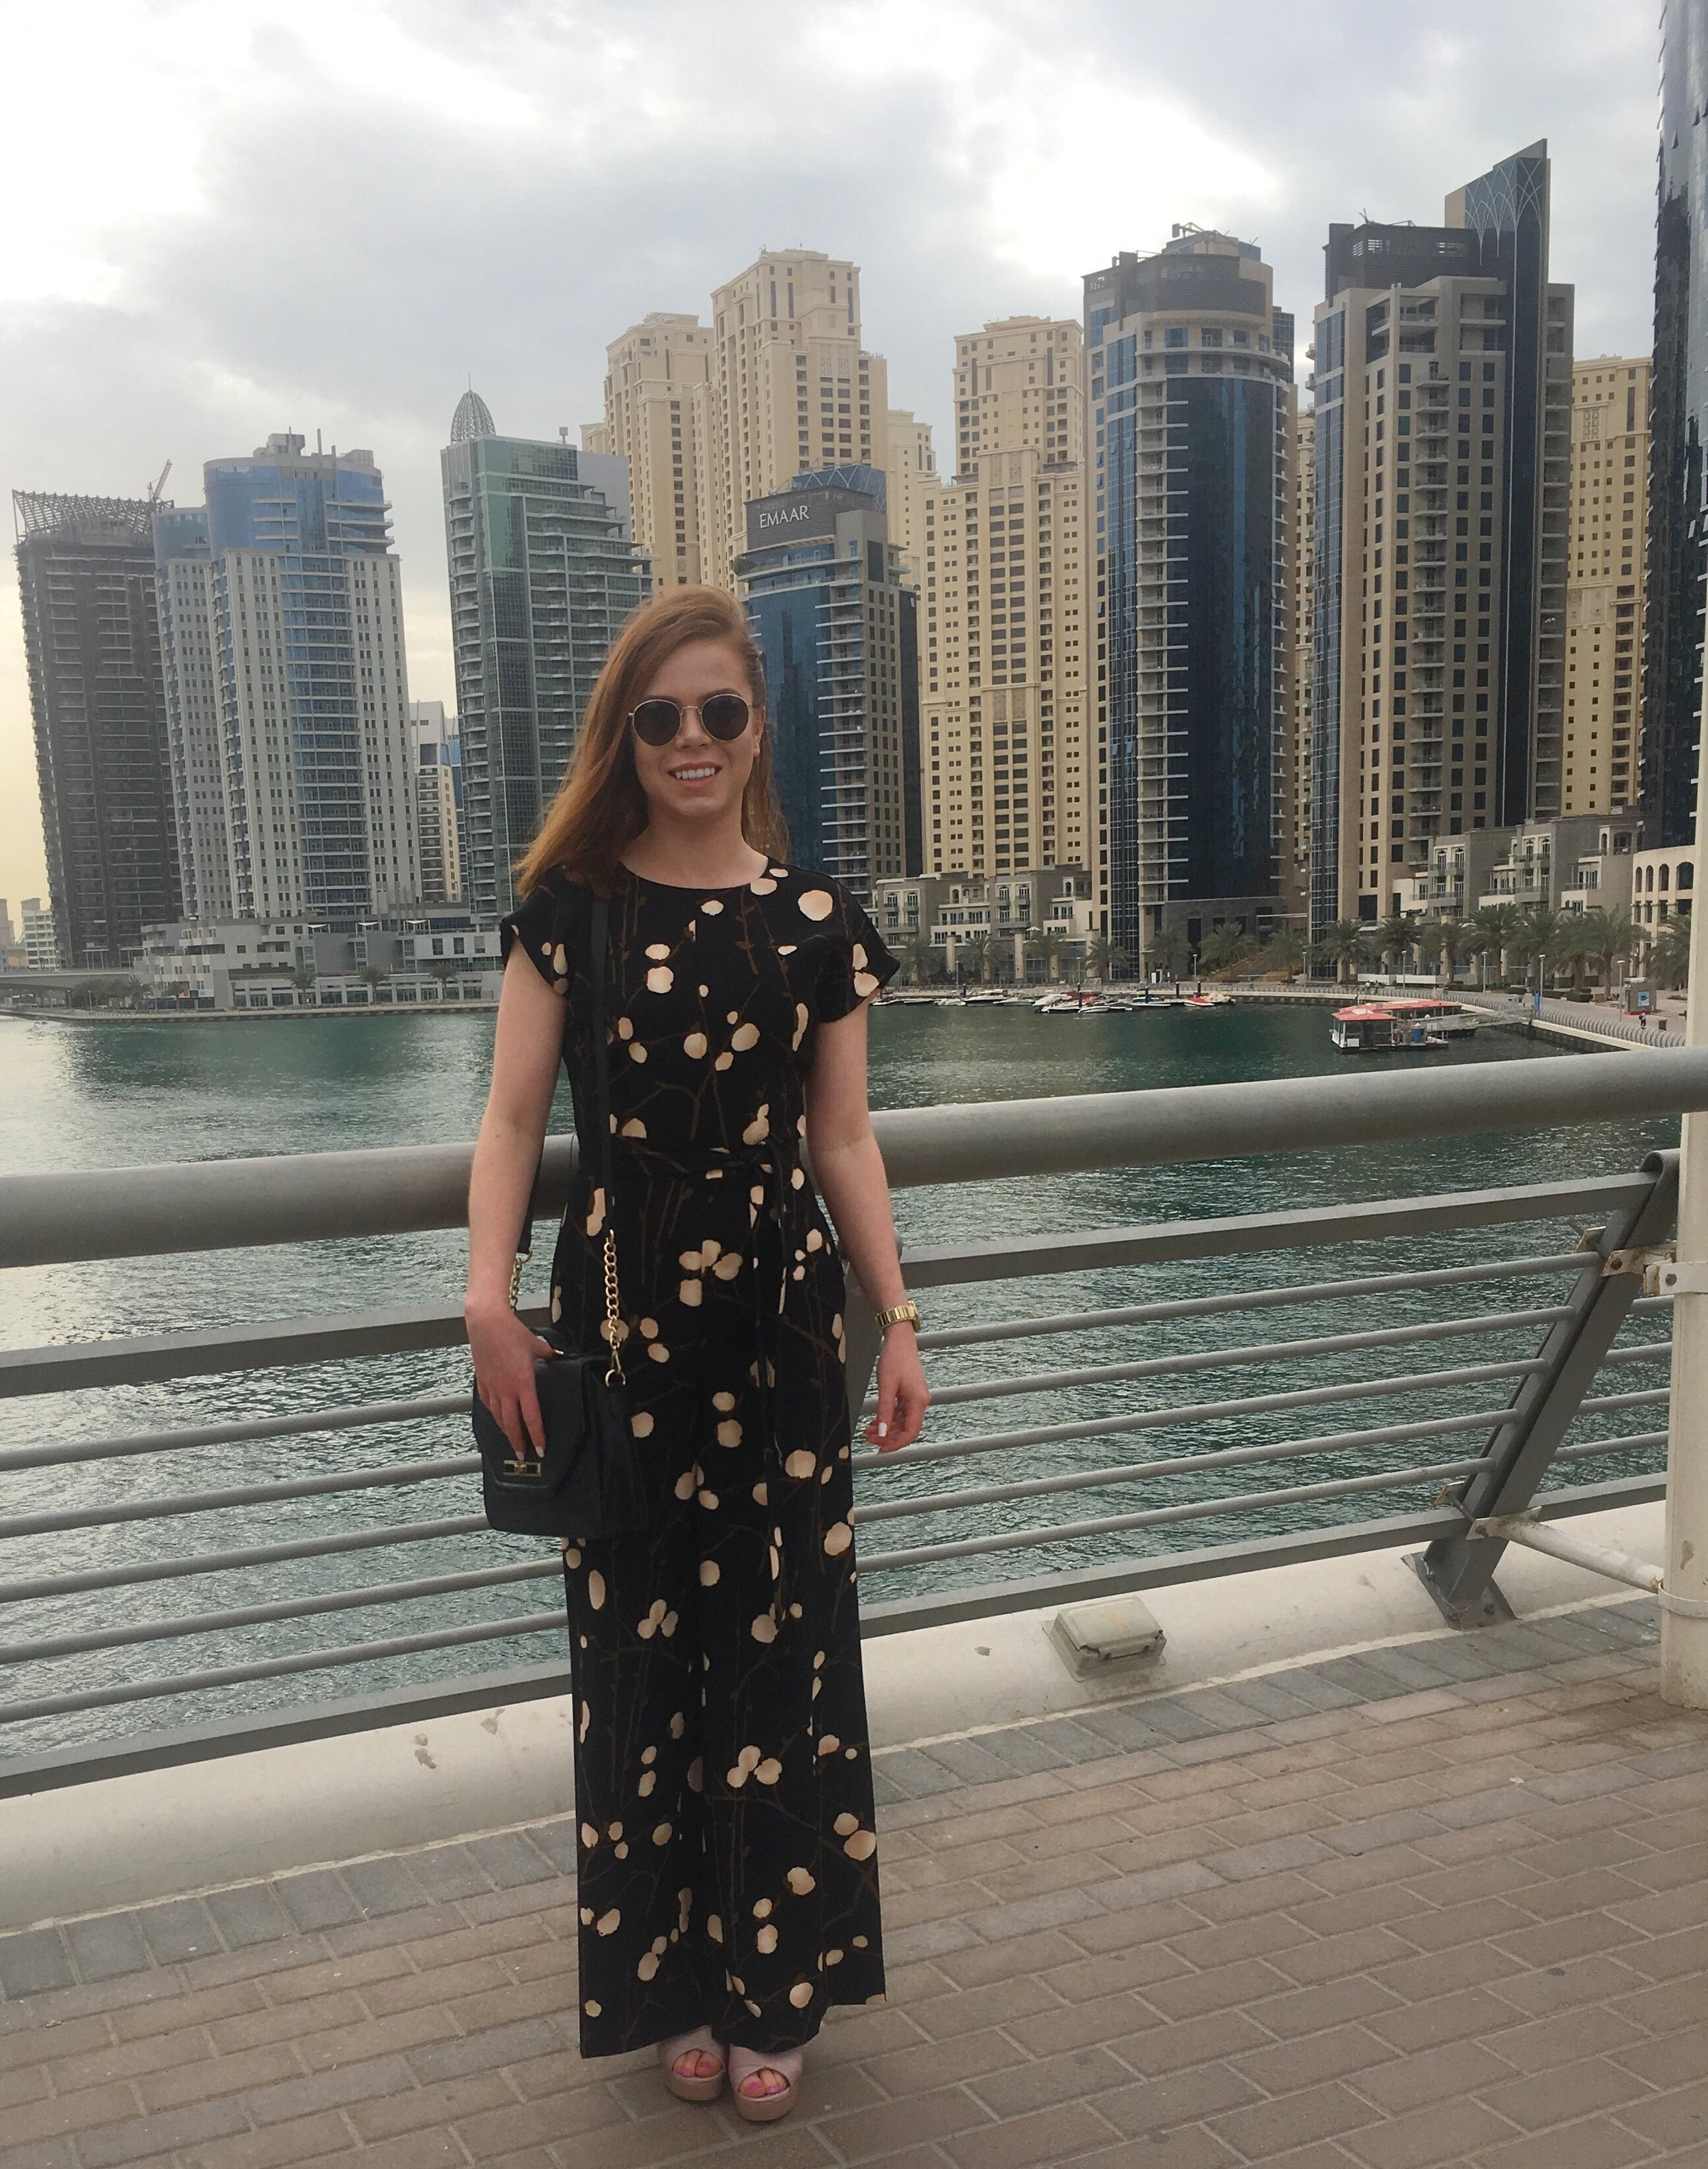 An awkward tourist photo down at Dubai Marina.